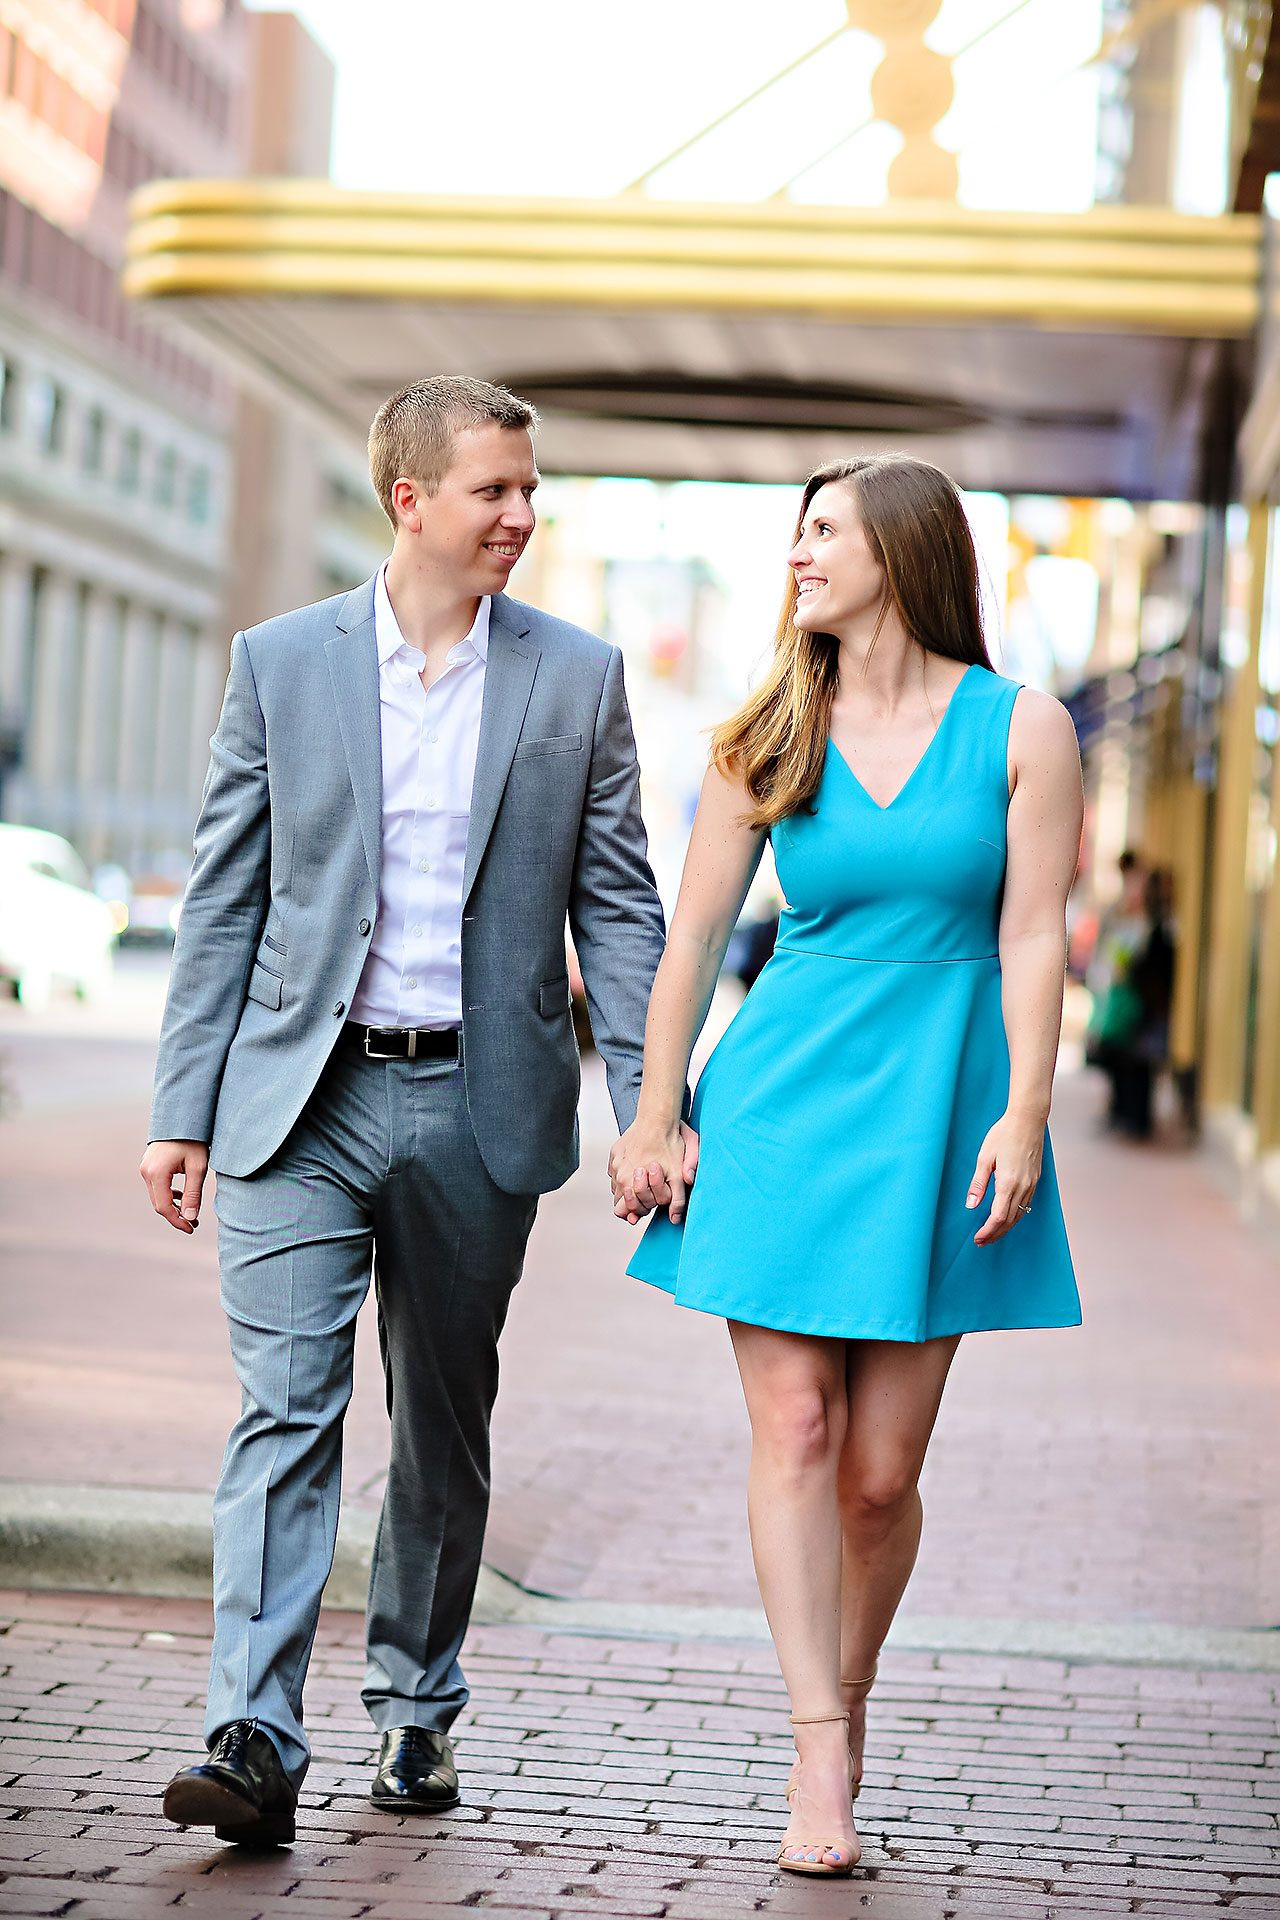 Chelsea Jeff Downtown Indy Engagement Session 078